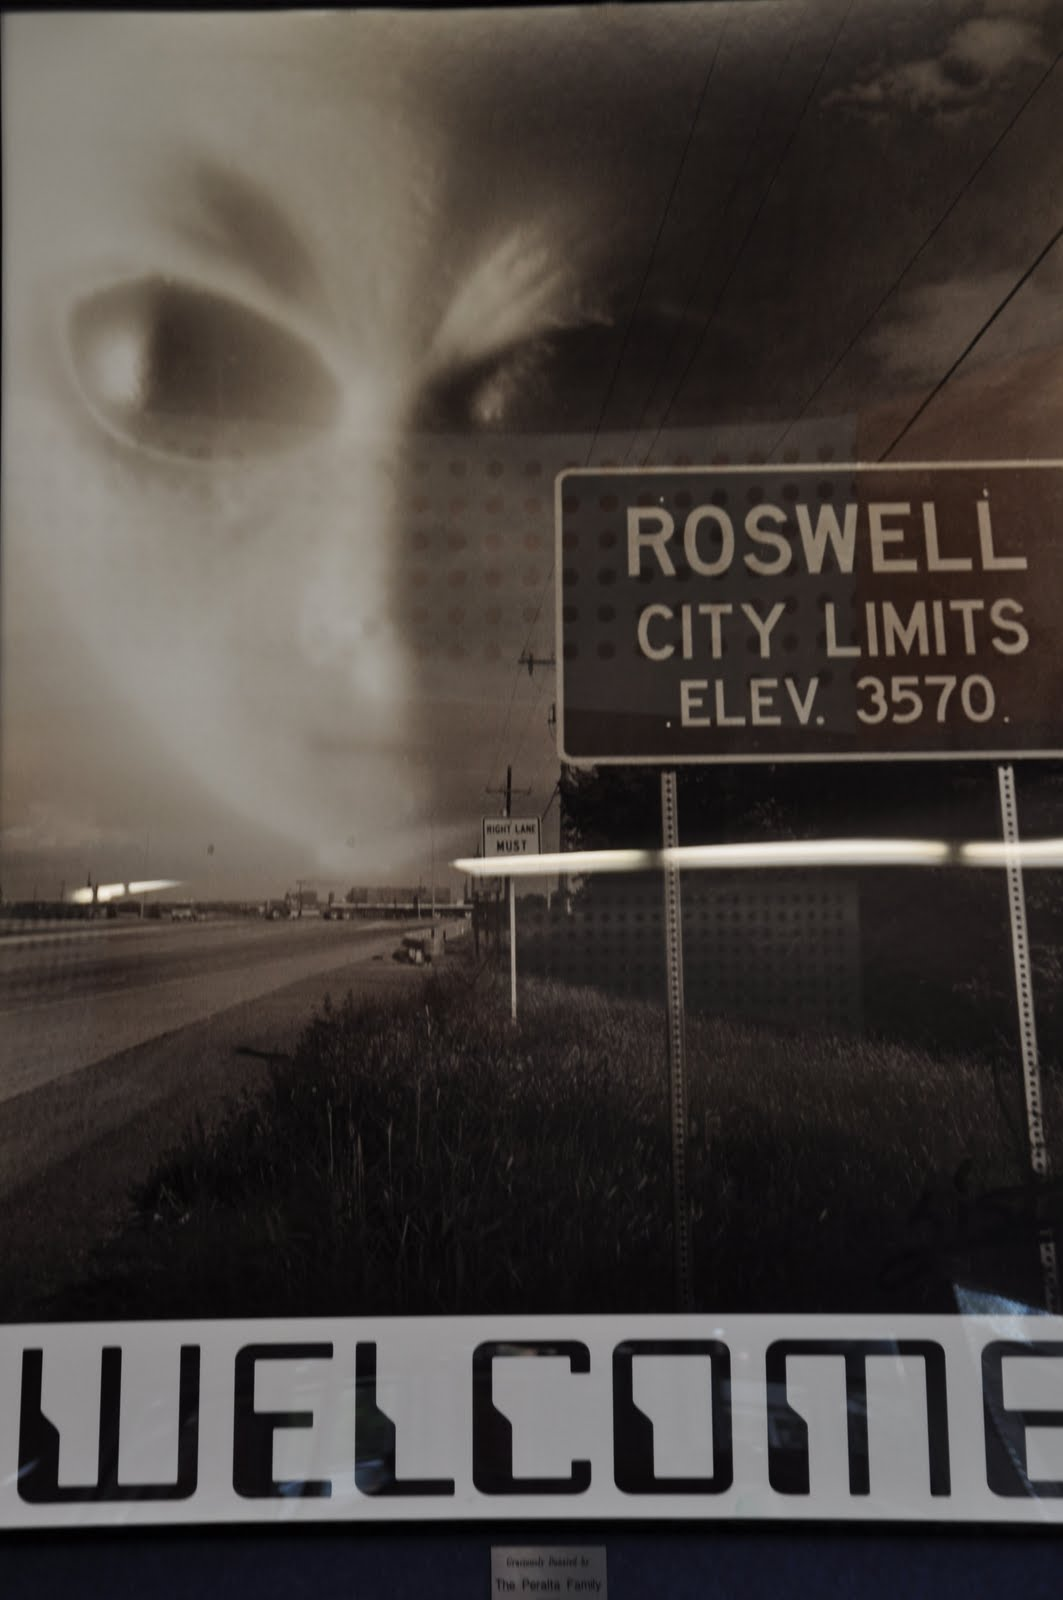 the roswell cover up will we ever know the truth Roswell incident, events surrounding the crash and recovery of a us army air   that revelation, however, did little to end the conspiracy theories  strange  objects in the sky that they claimed were spacecraft piloted by aliens  (the  portions of the debris most puzzling to brazel may in fact have been from a radar  target.